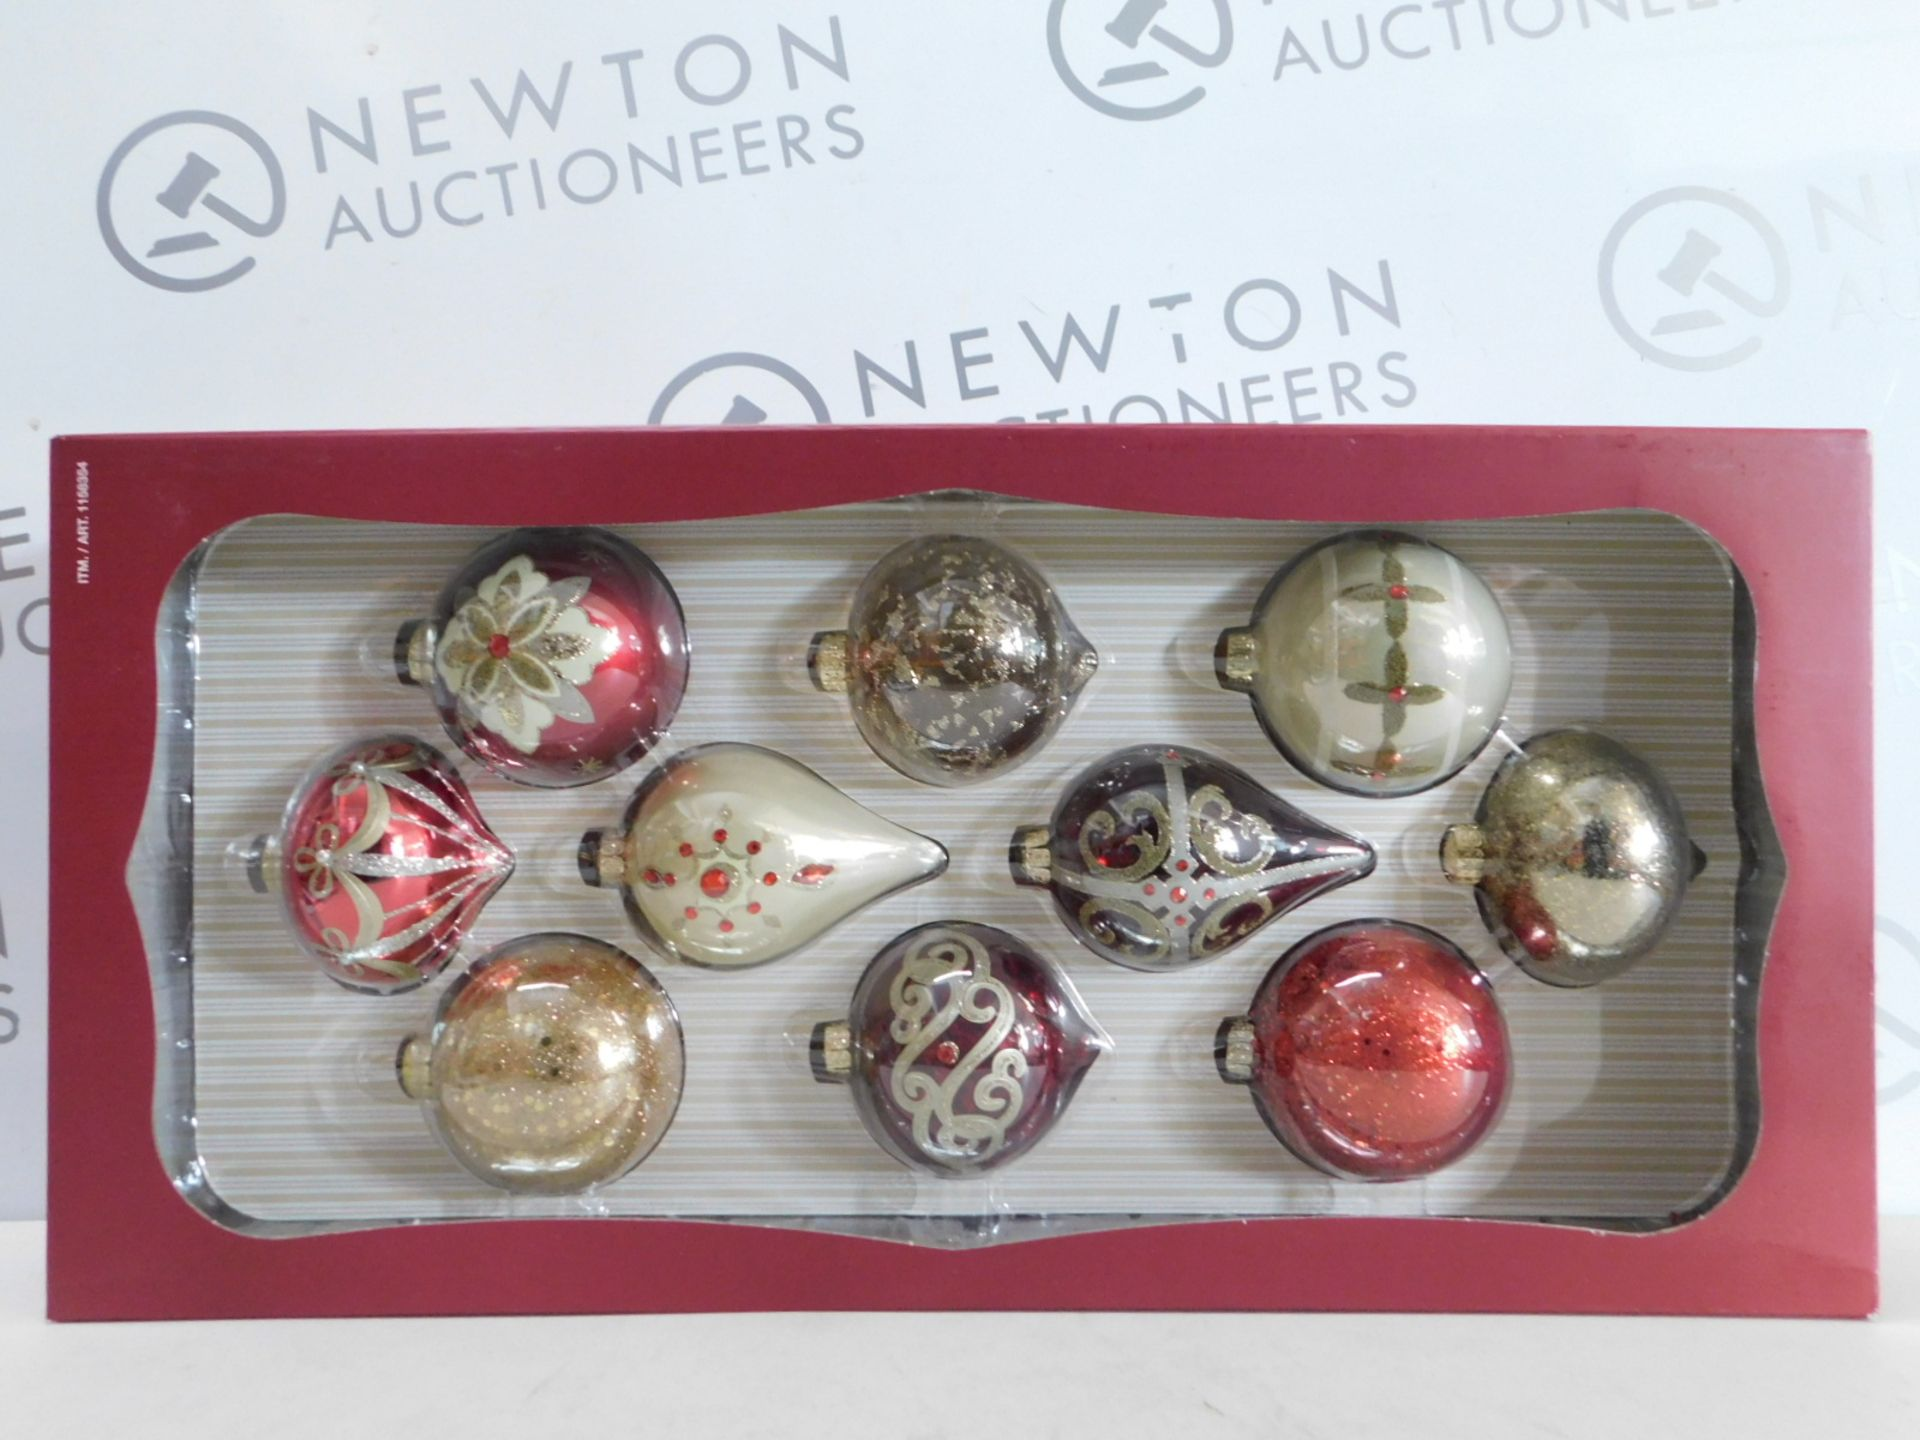 Lot 280 - 1 BRAND NEW BOXED KIRKLAND SIGNATURE 10 HAND-DECORATED GLASS ORNAMENTS RRP £29.99